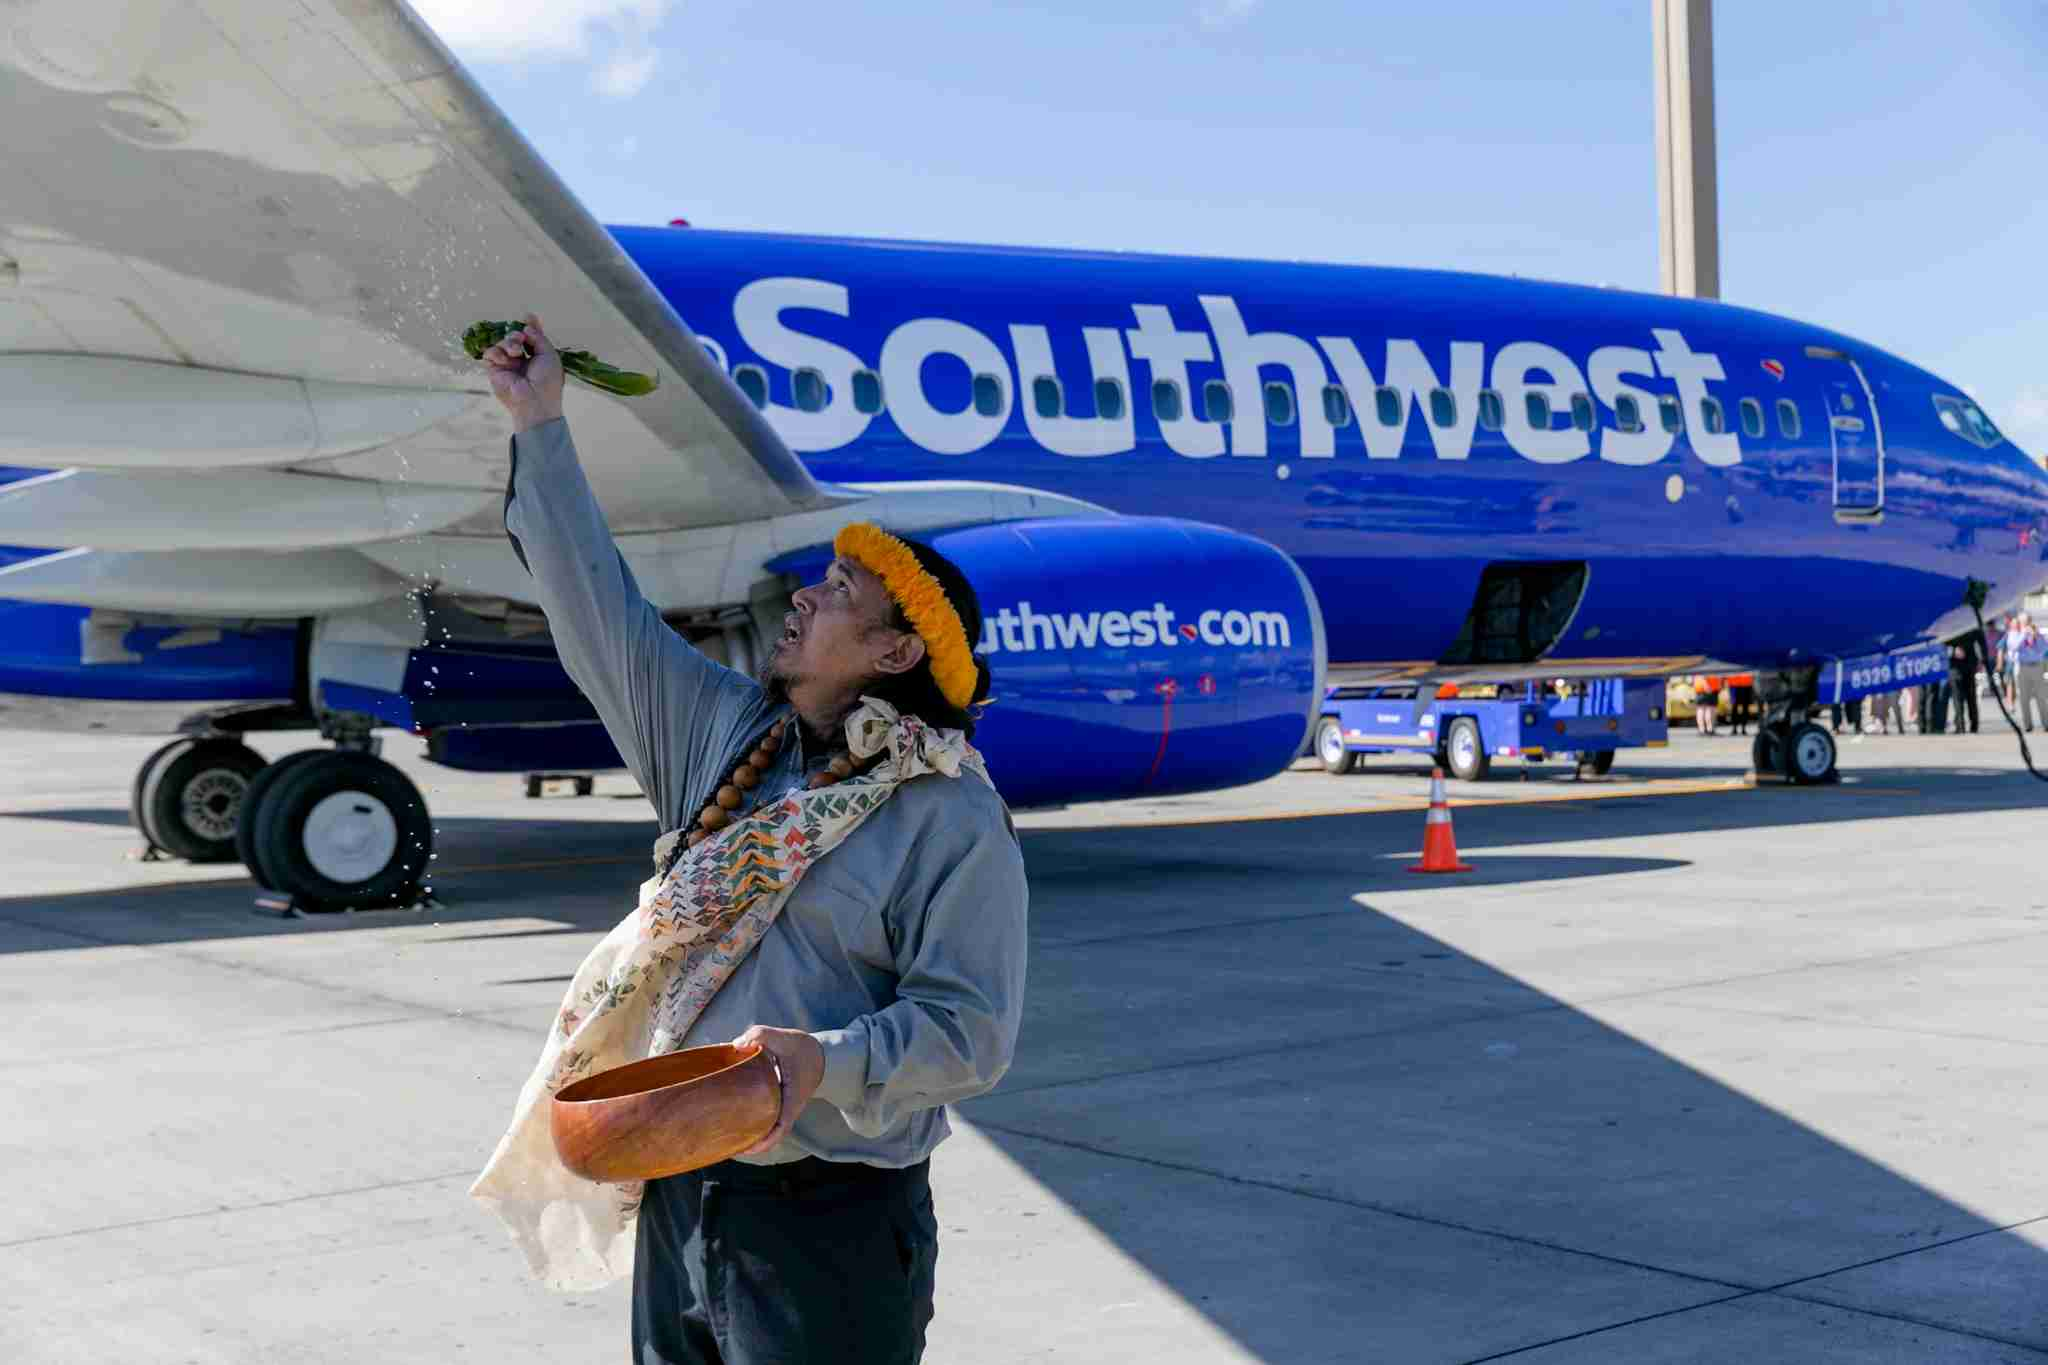 Hawaiian kahu Kalama Cabigon, a cultural practitioner, gives a Hawaiian blessing over the Southwest Airlines flight that landed for the first time at the Honolulu International Airport, Tuesday, February 5, 2019, in Honolulu. (Marco Garcia/The Points Guy)